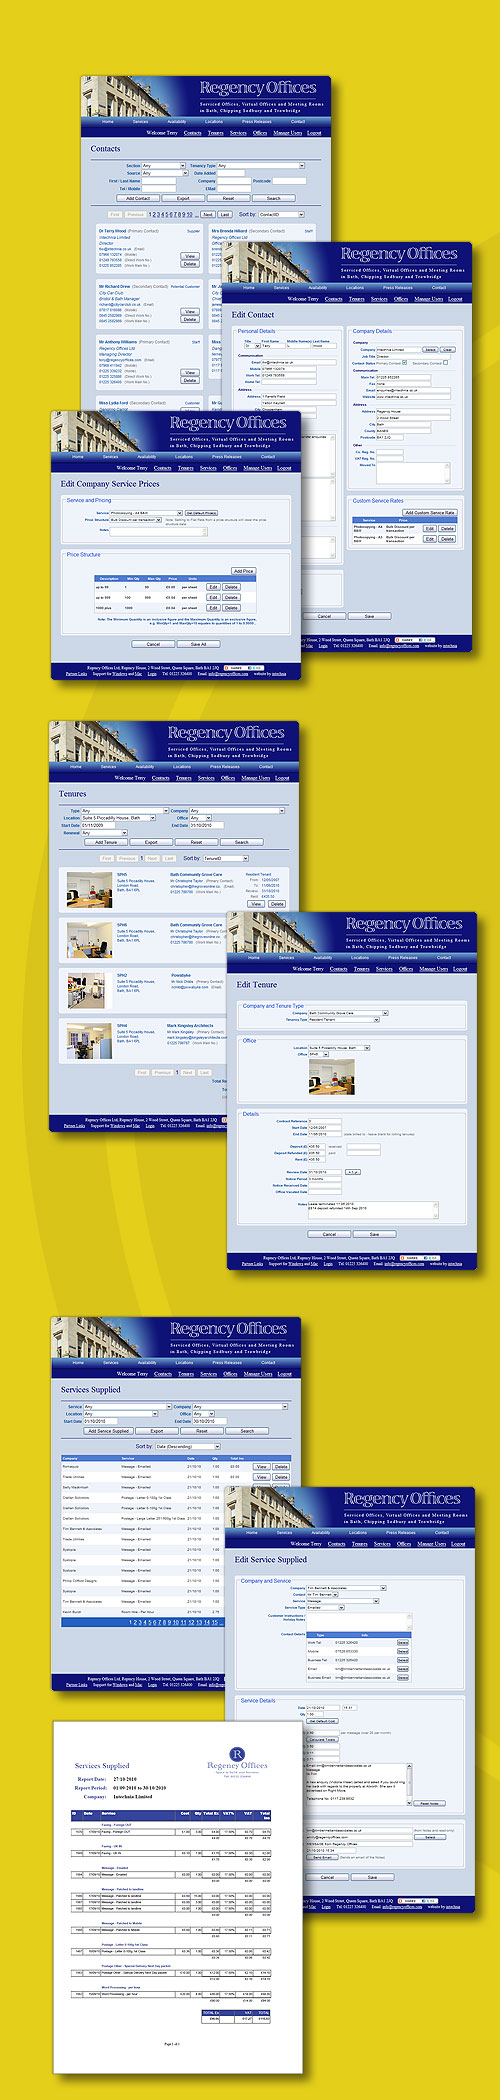 Regency Offices - Office Management System - designed by Intechnia